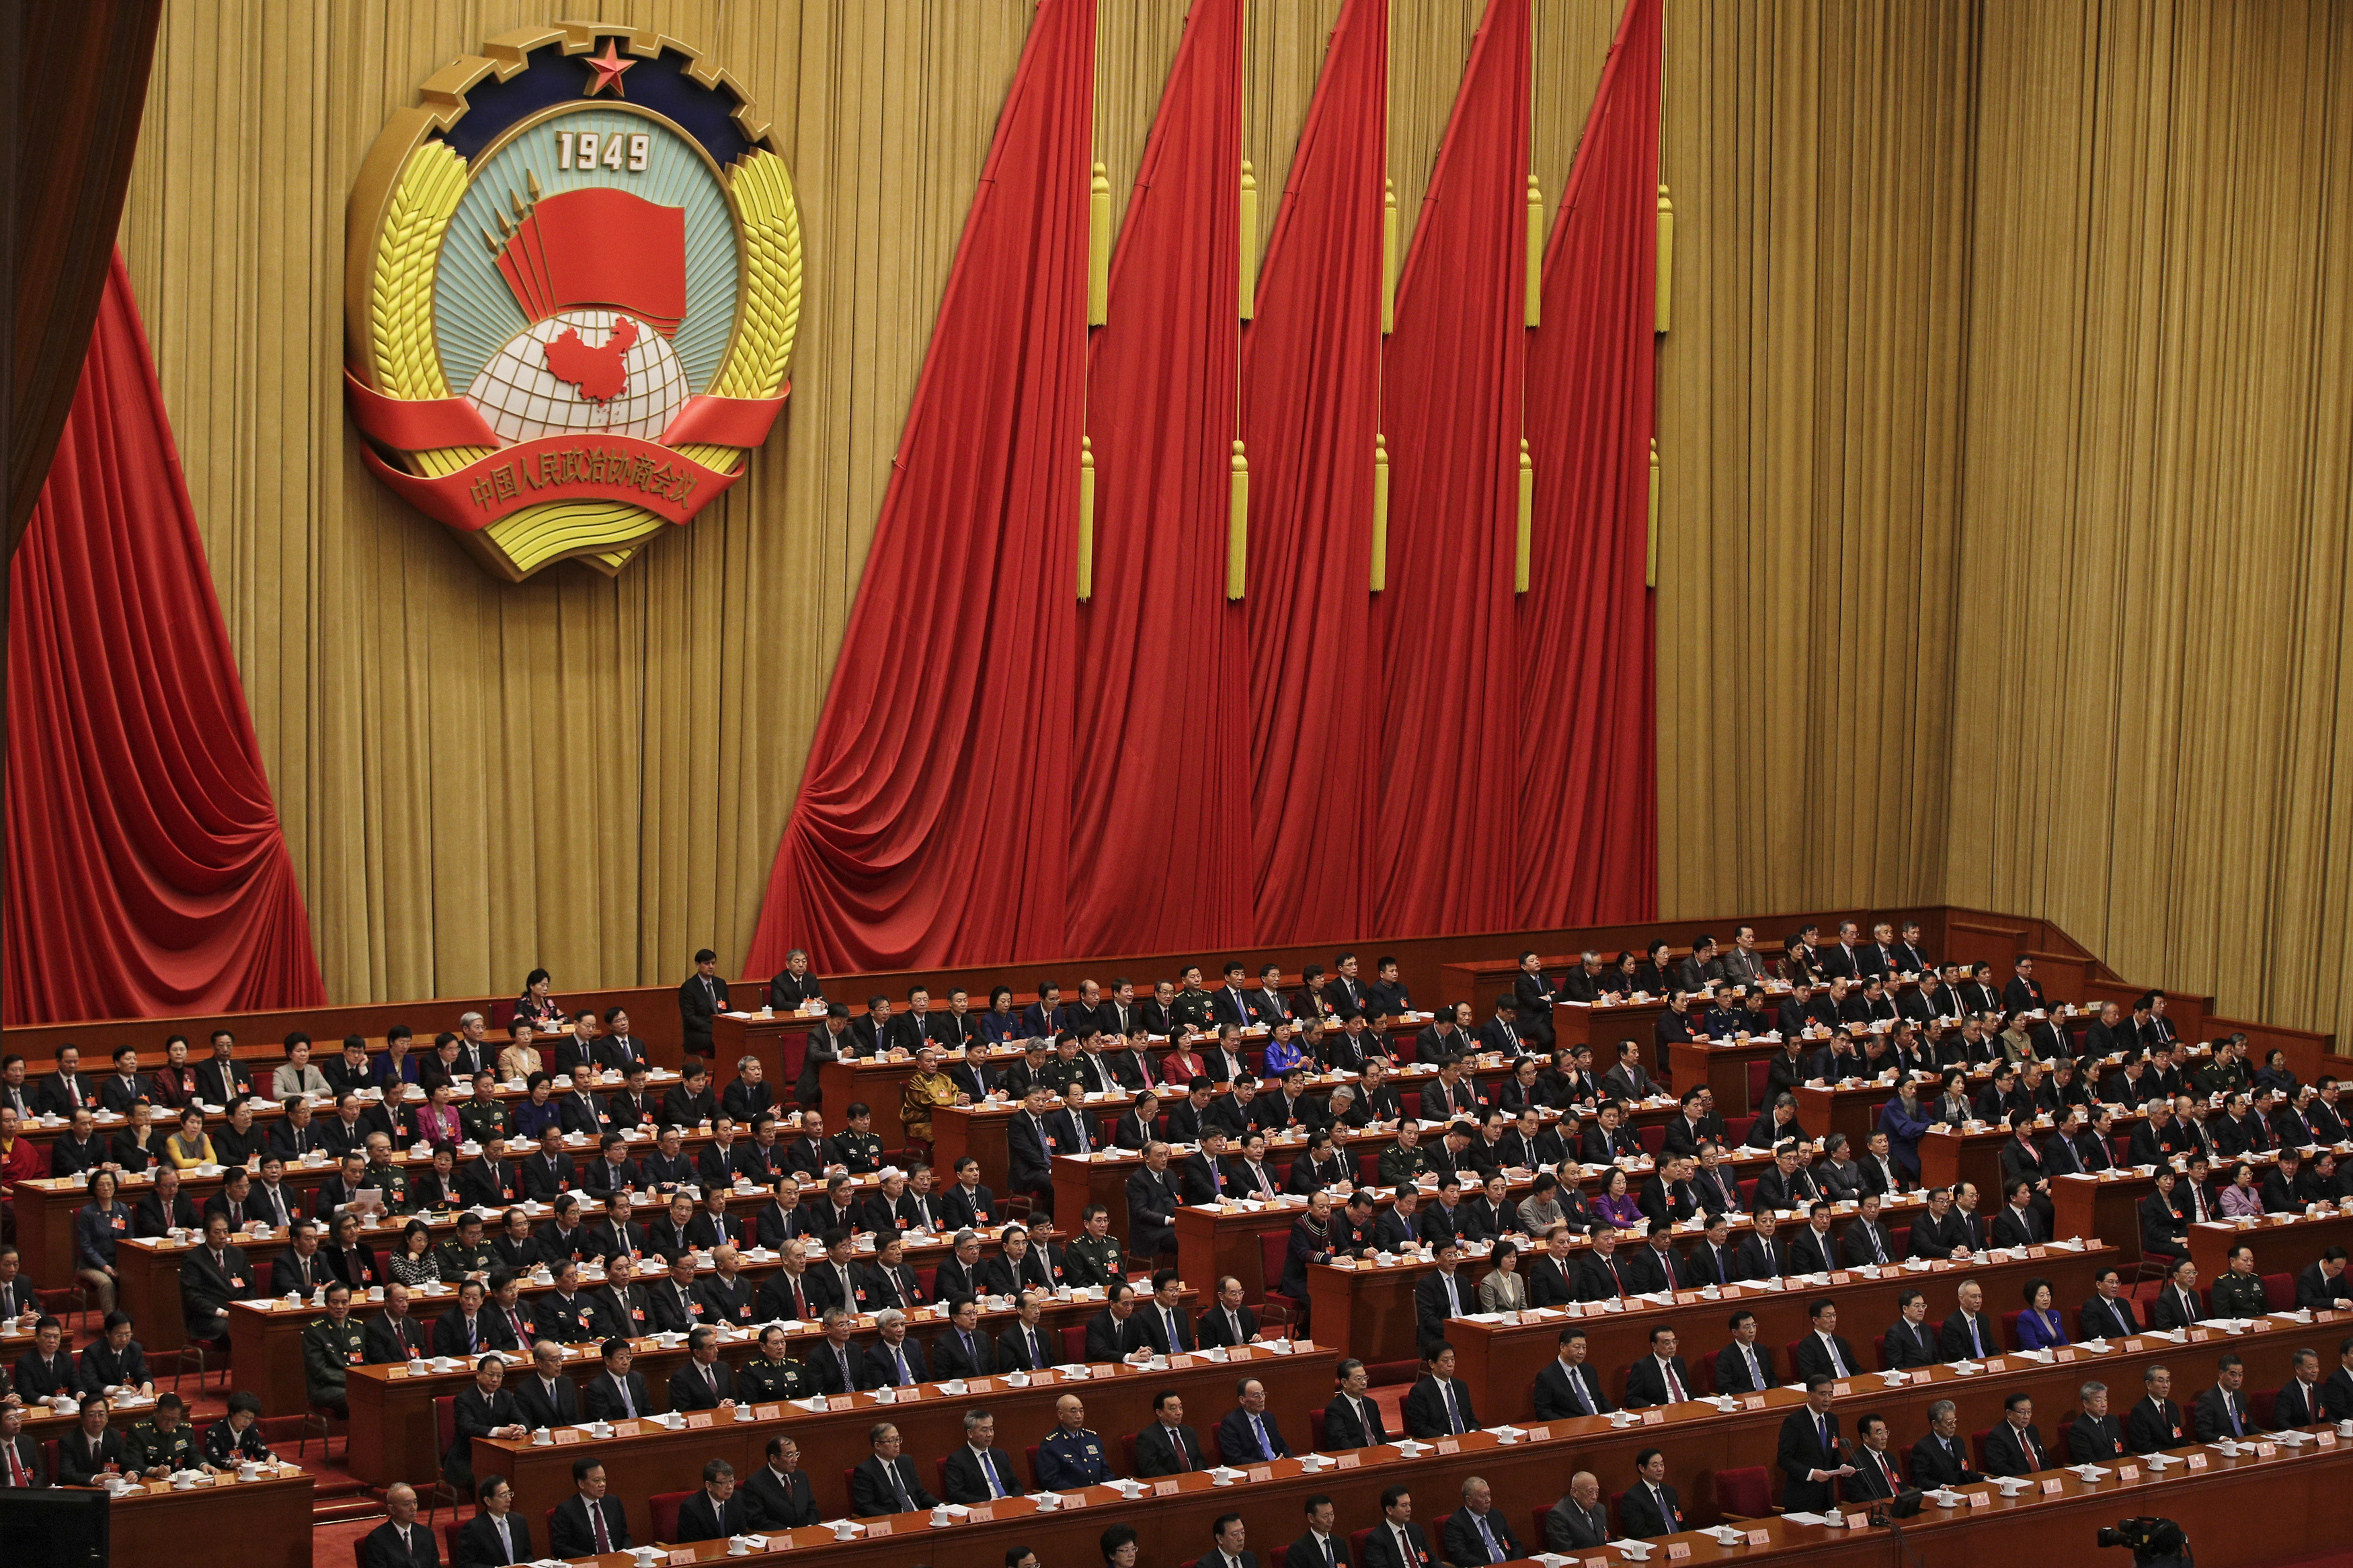 Chinese People's Political Consultative Conference (CPPCC) chairman and Politburo Standing Committee member Wang Yang delivers a closing speech for the Chinese People's Political Consultative Conference (CPPCC) at the Great Hall of the People in Beijing, Wednesday, March 13, 2019. (AP Photo/Andy Wong)